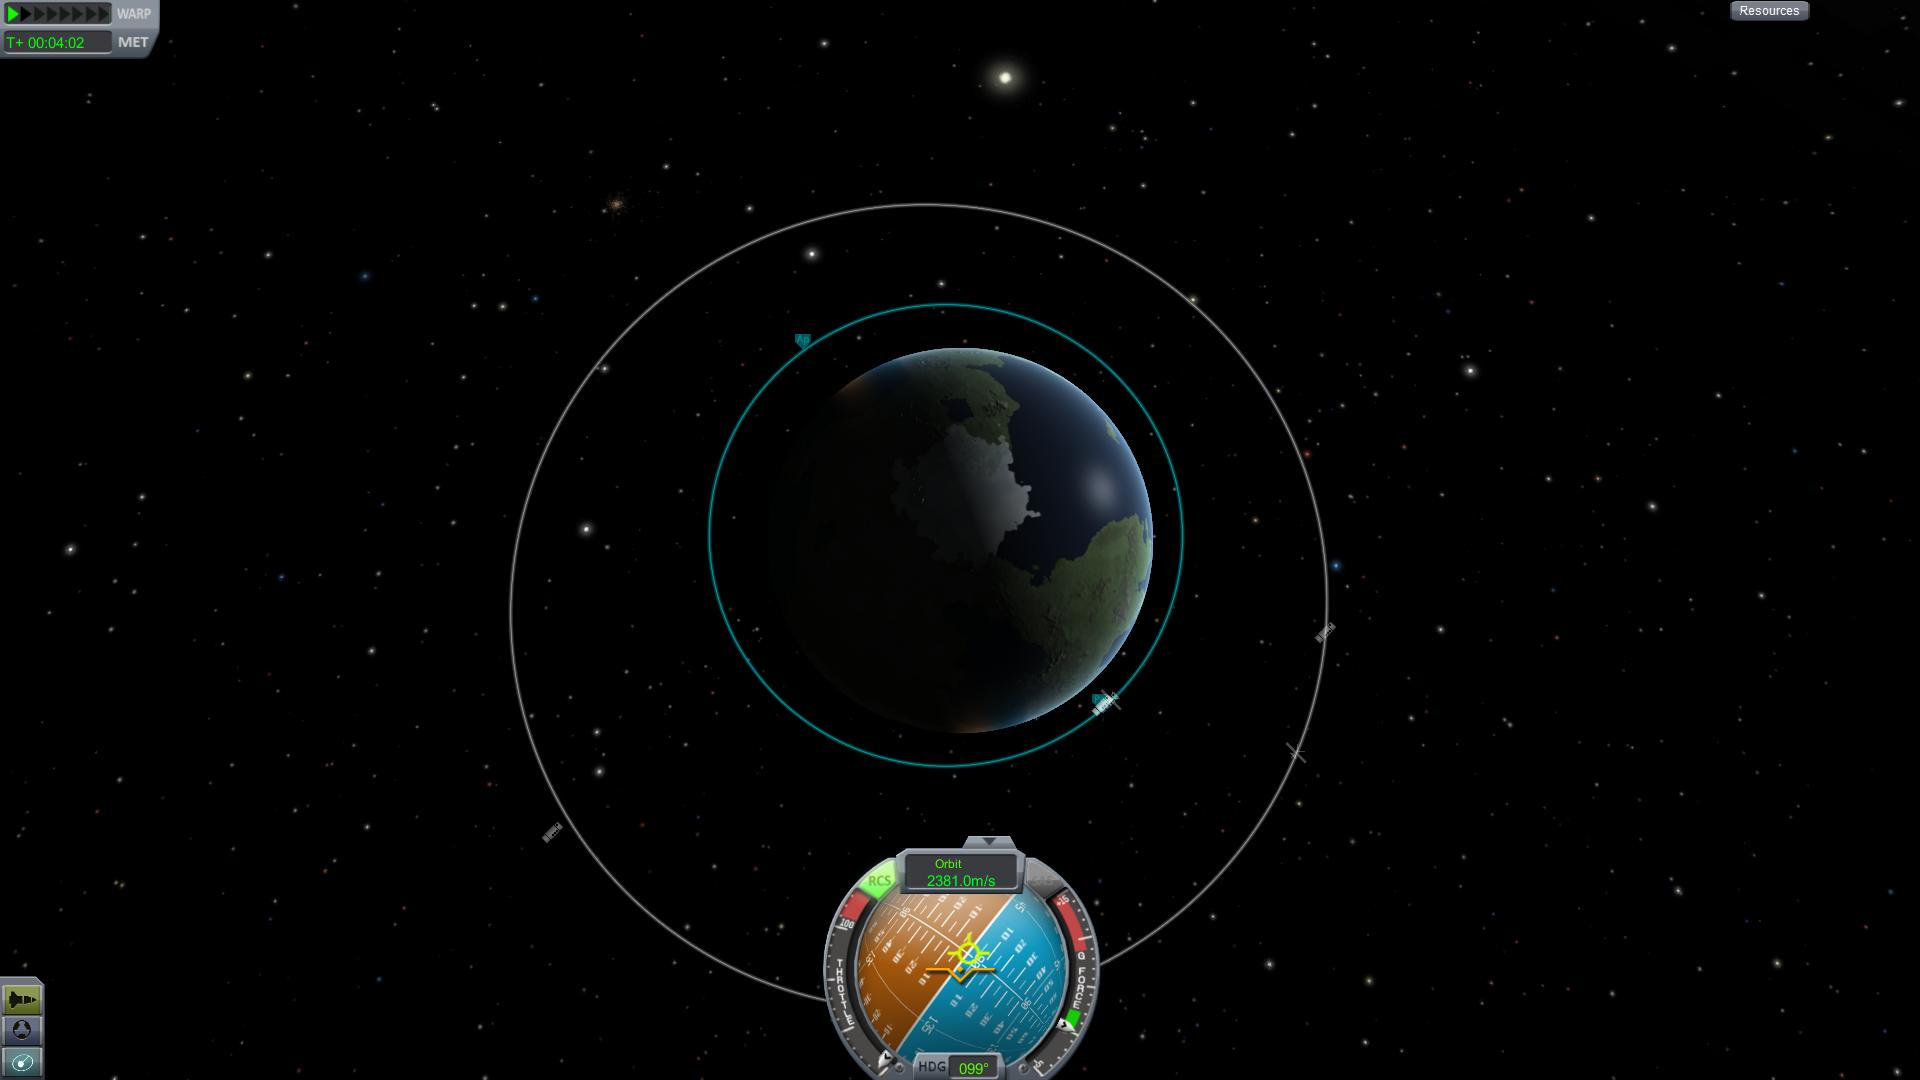 ksp planets and moons - photo #48